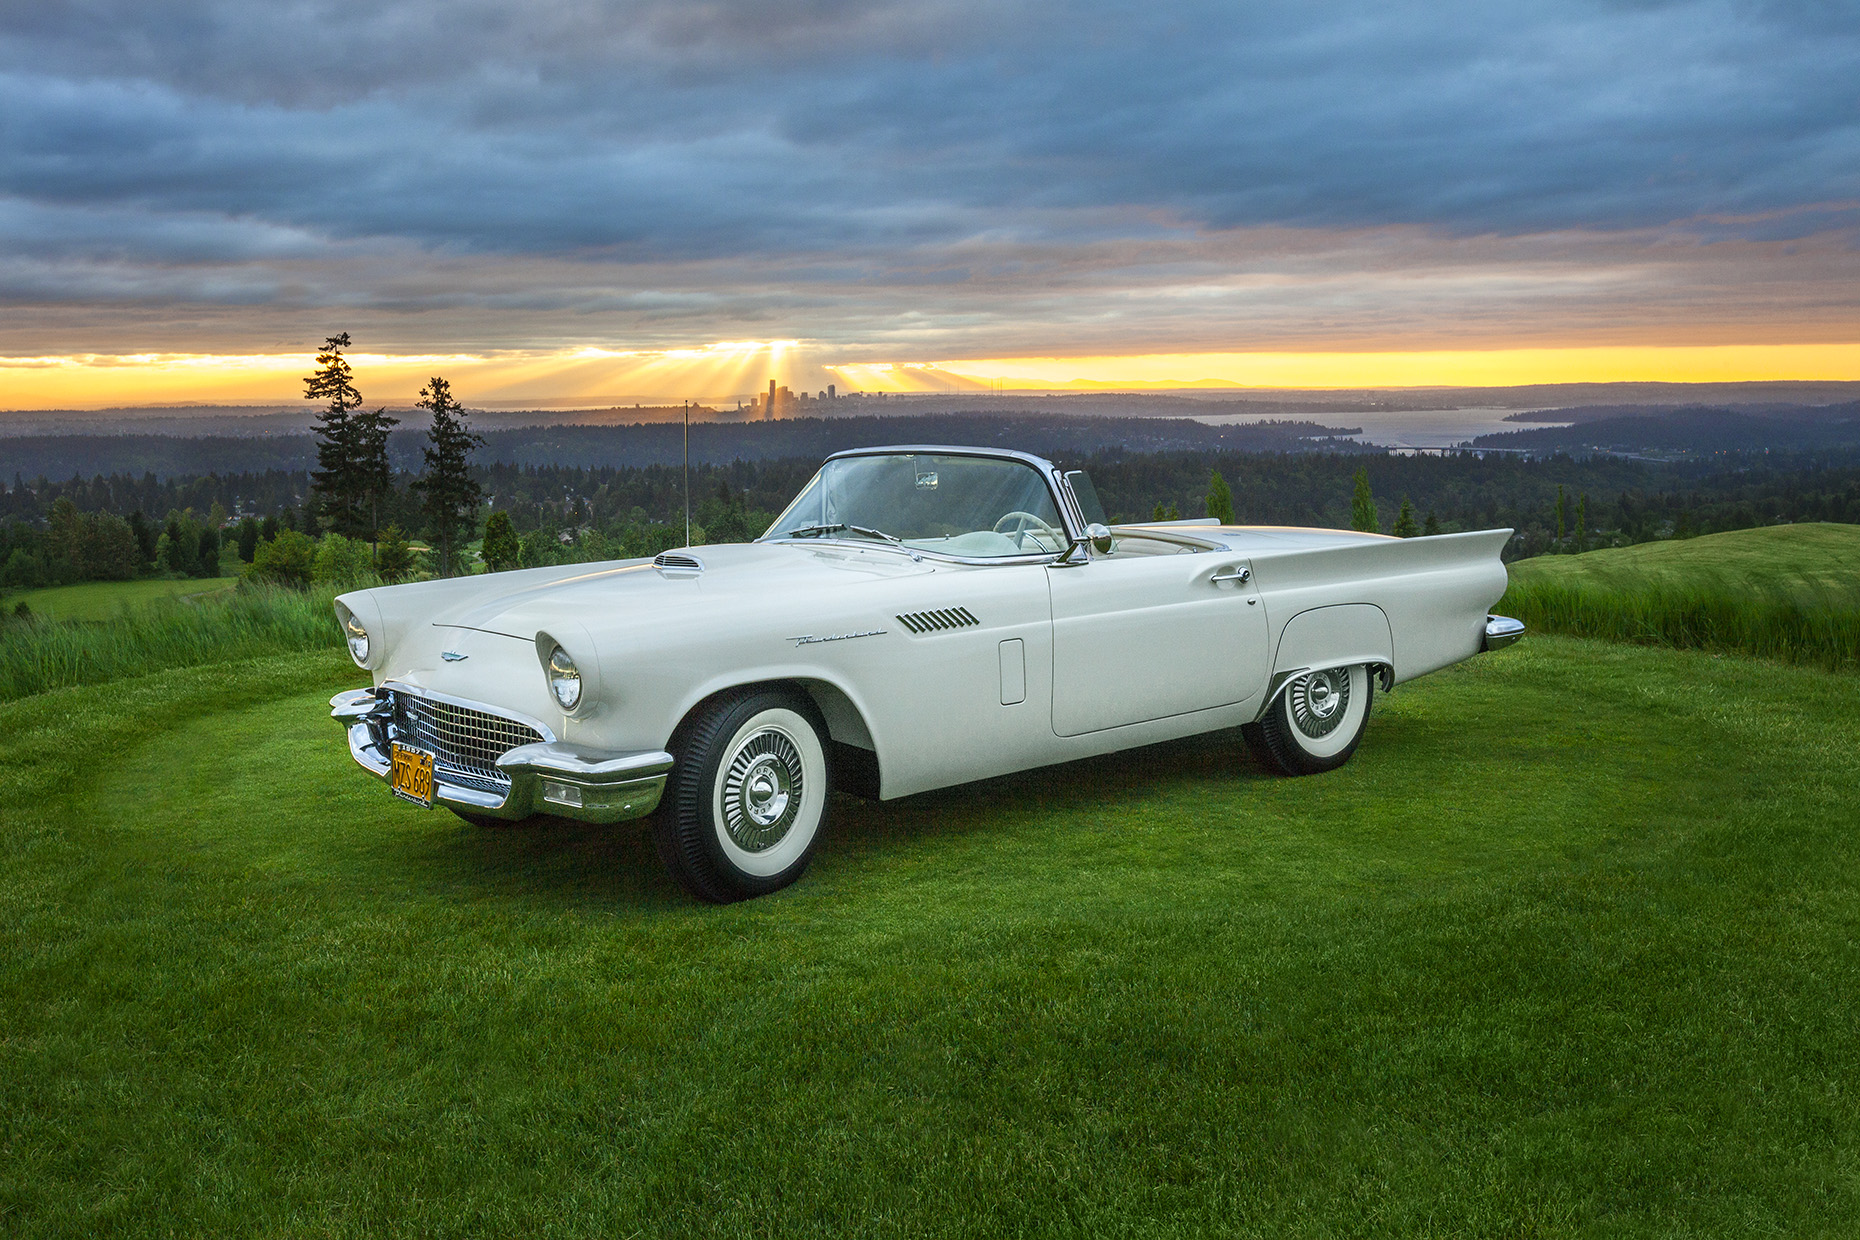 LeMay ACM - 1957 Ford Thunderbird